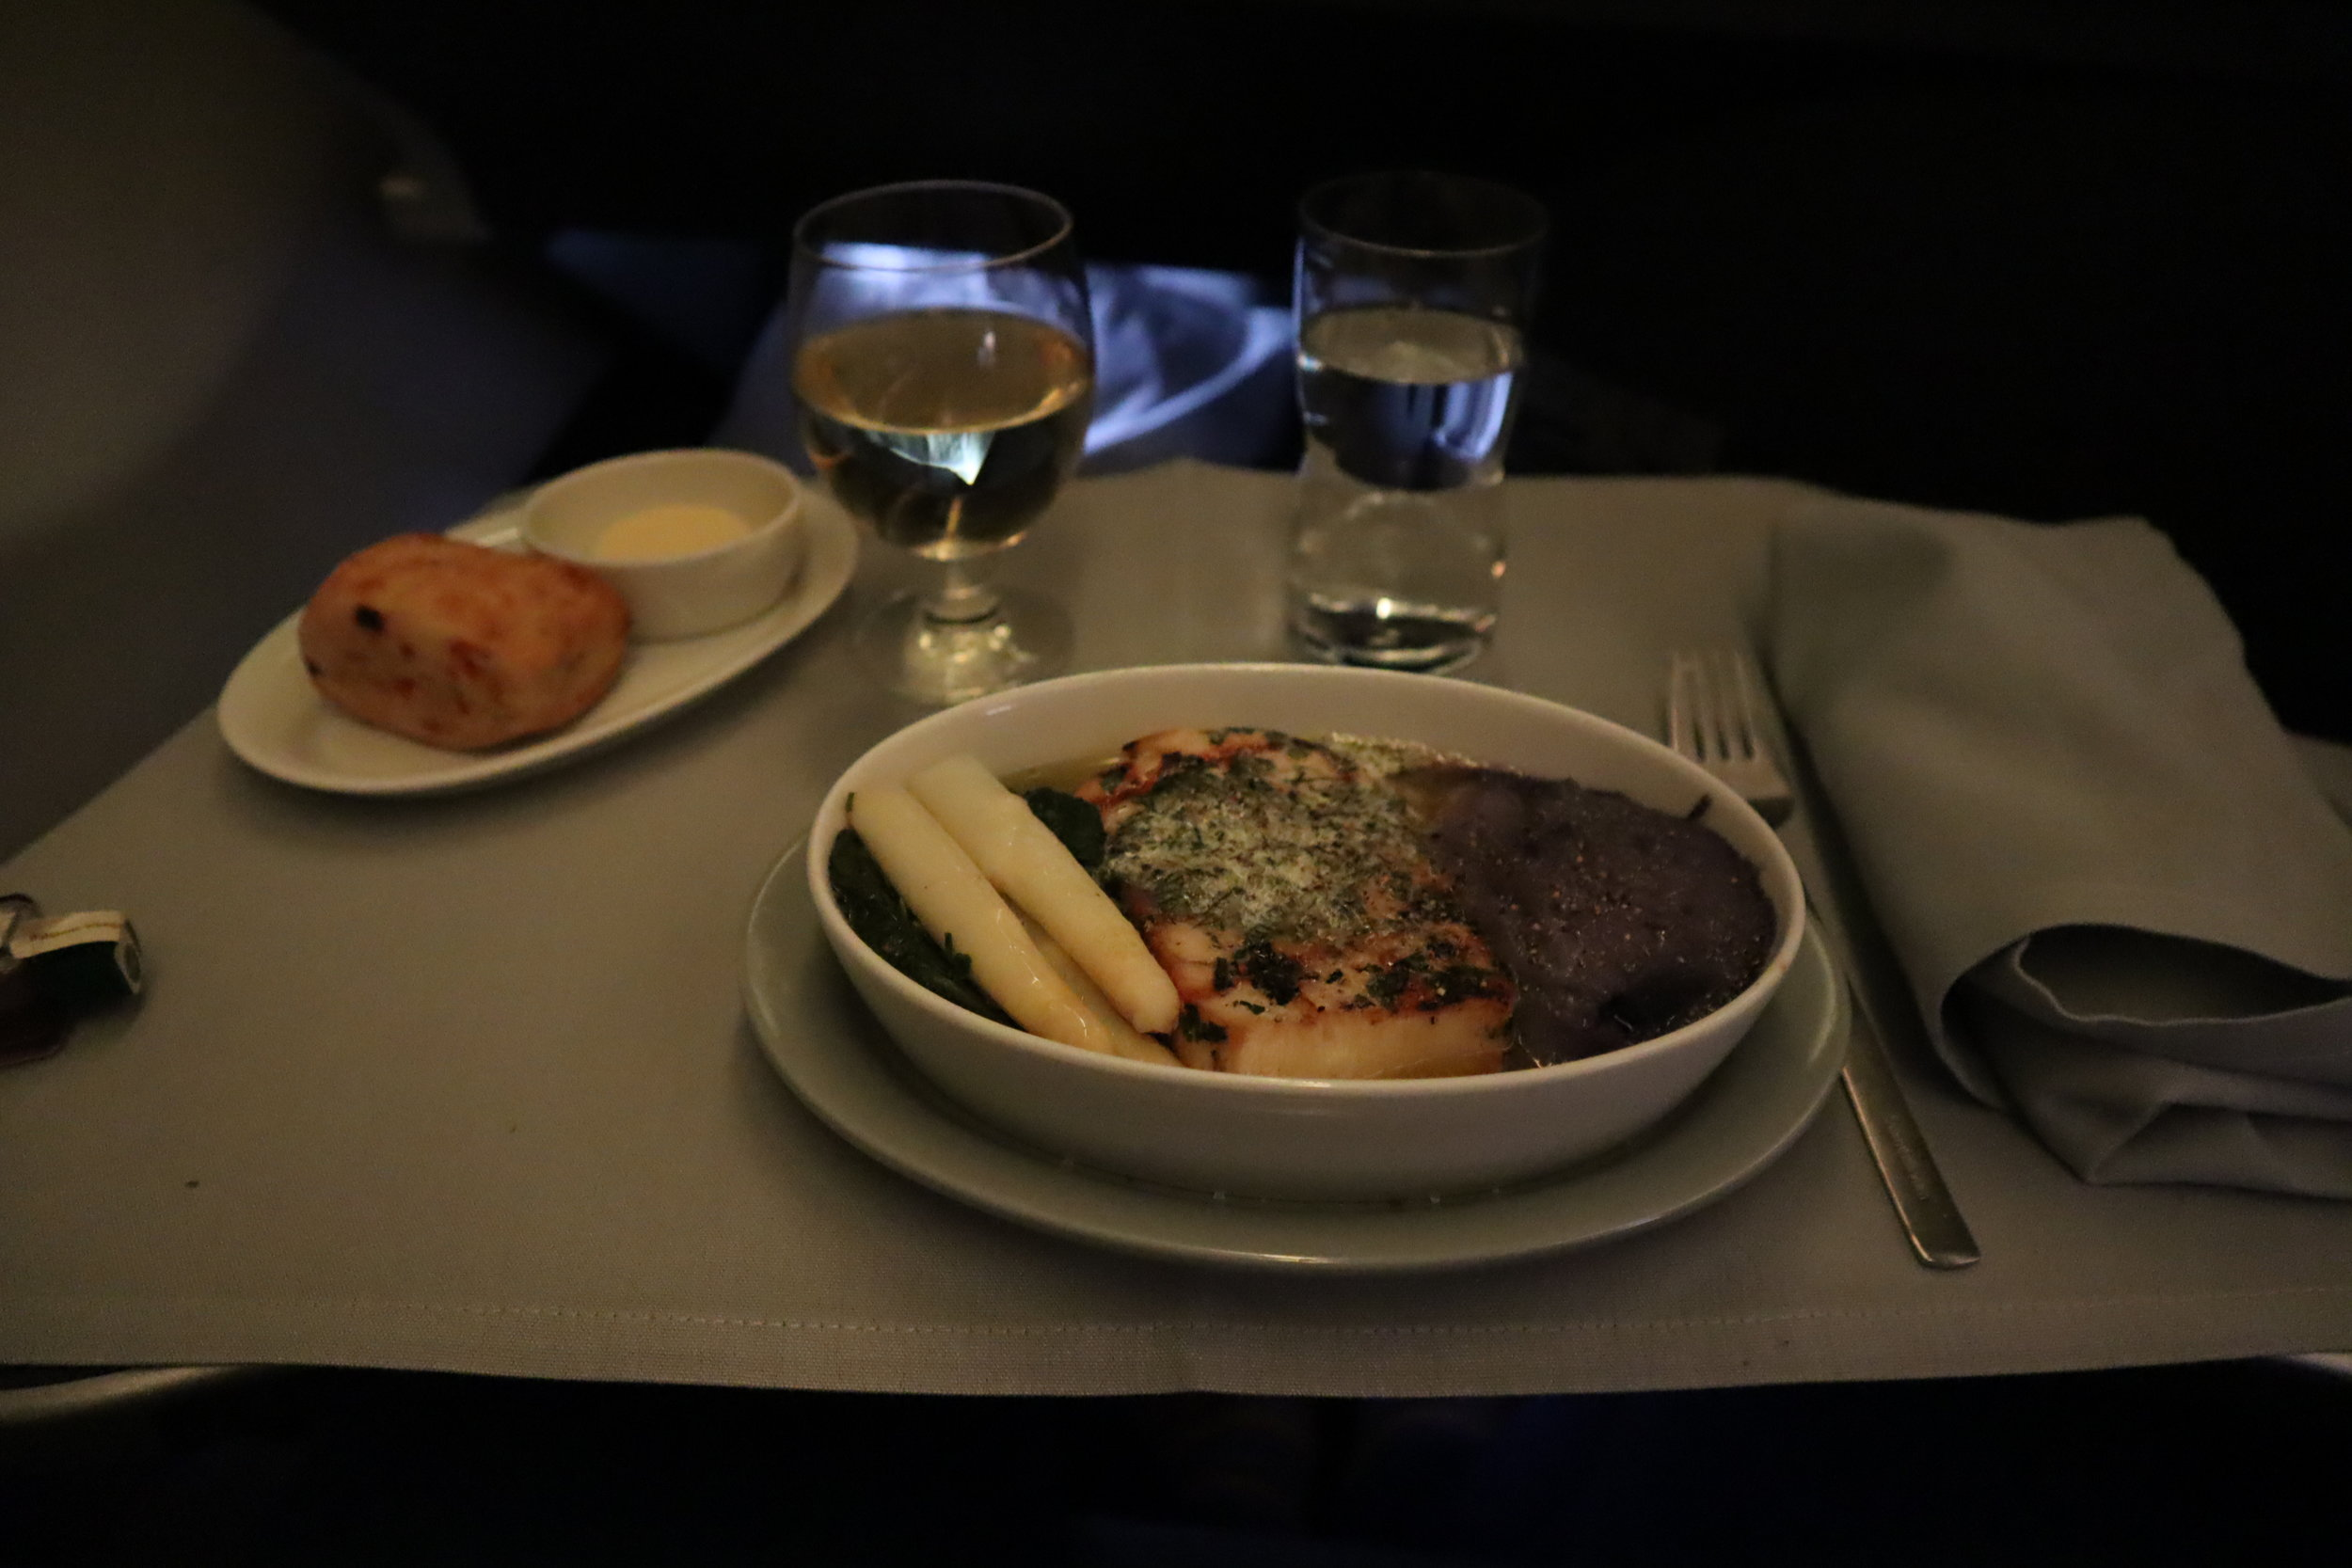 SAS business class – Main course